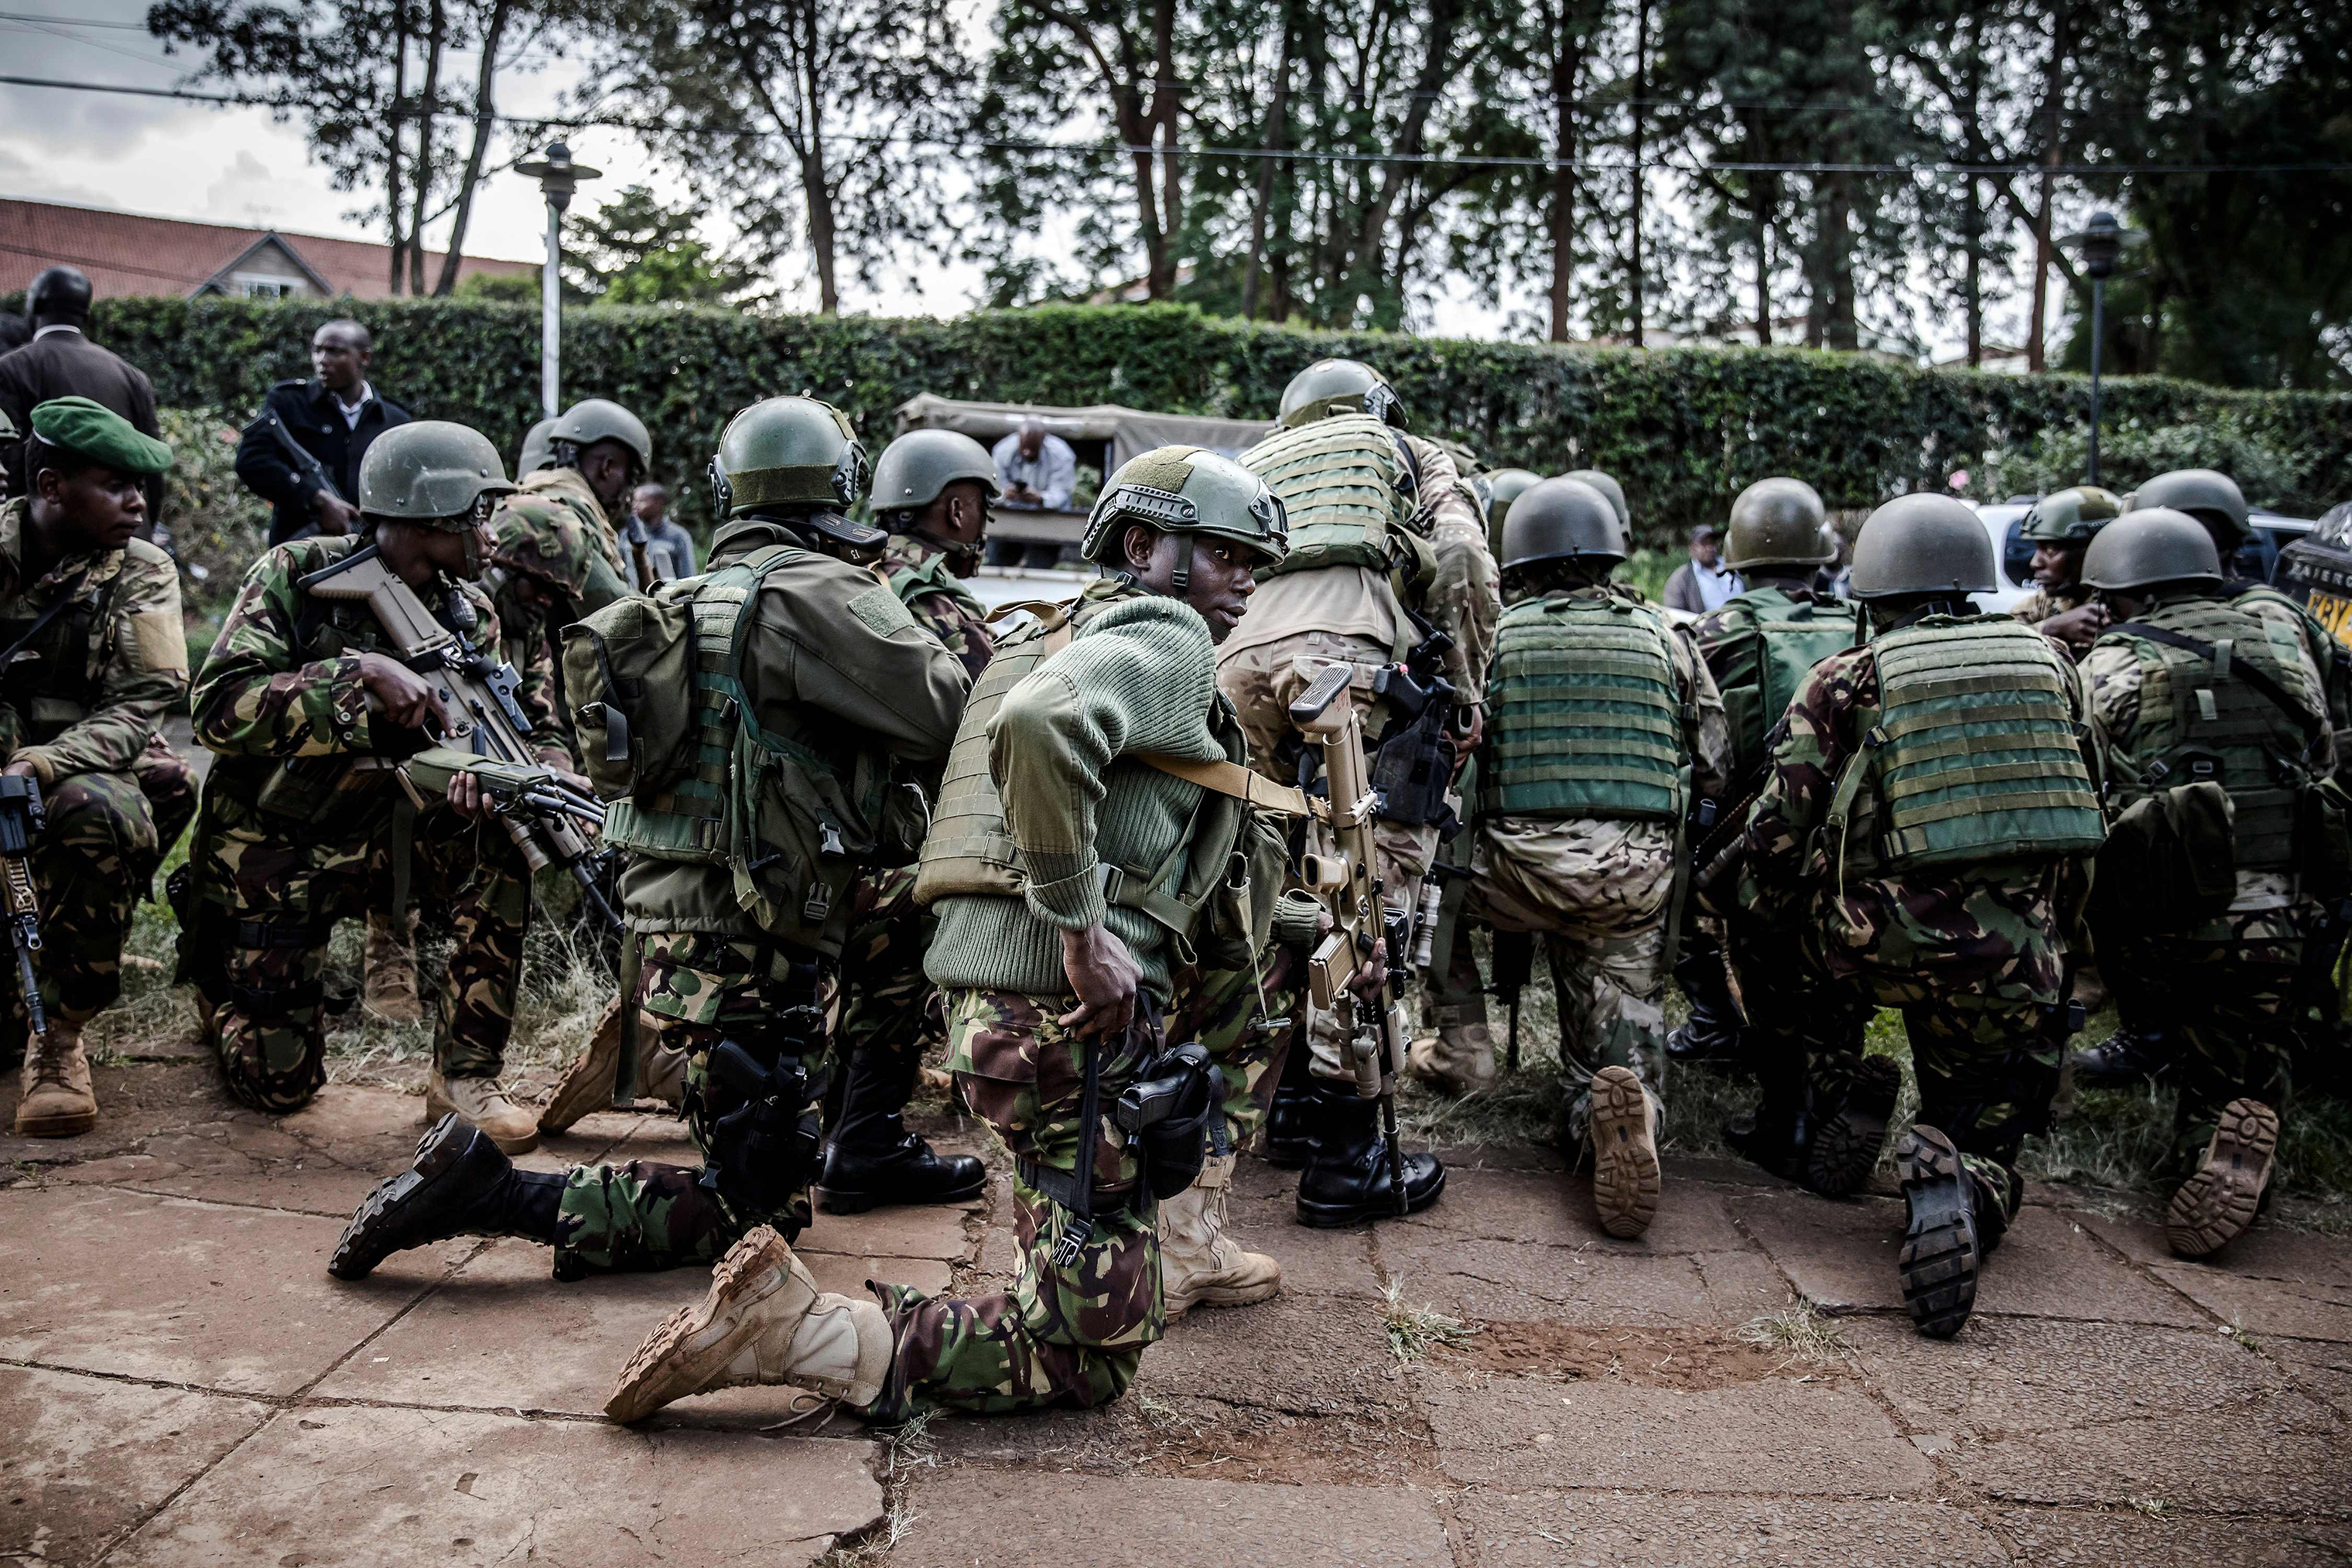 Kenyan special forces take position outside a hotel complex.